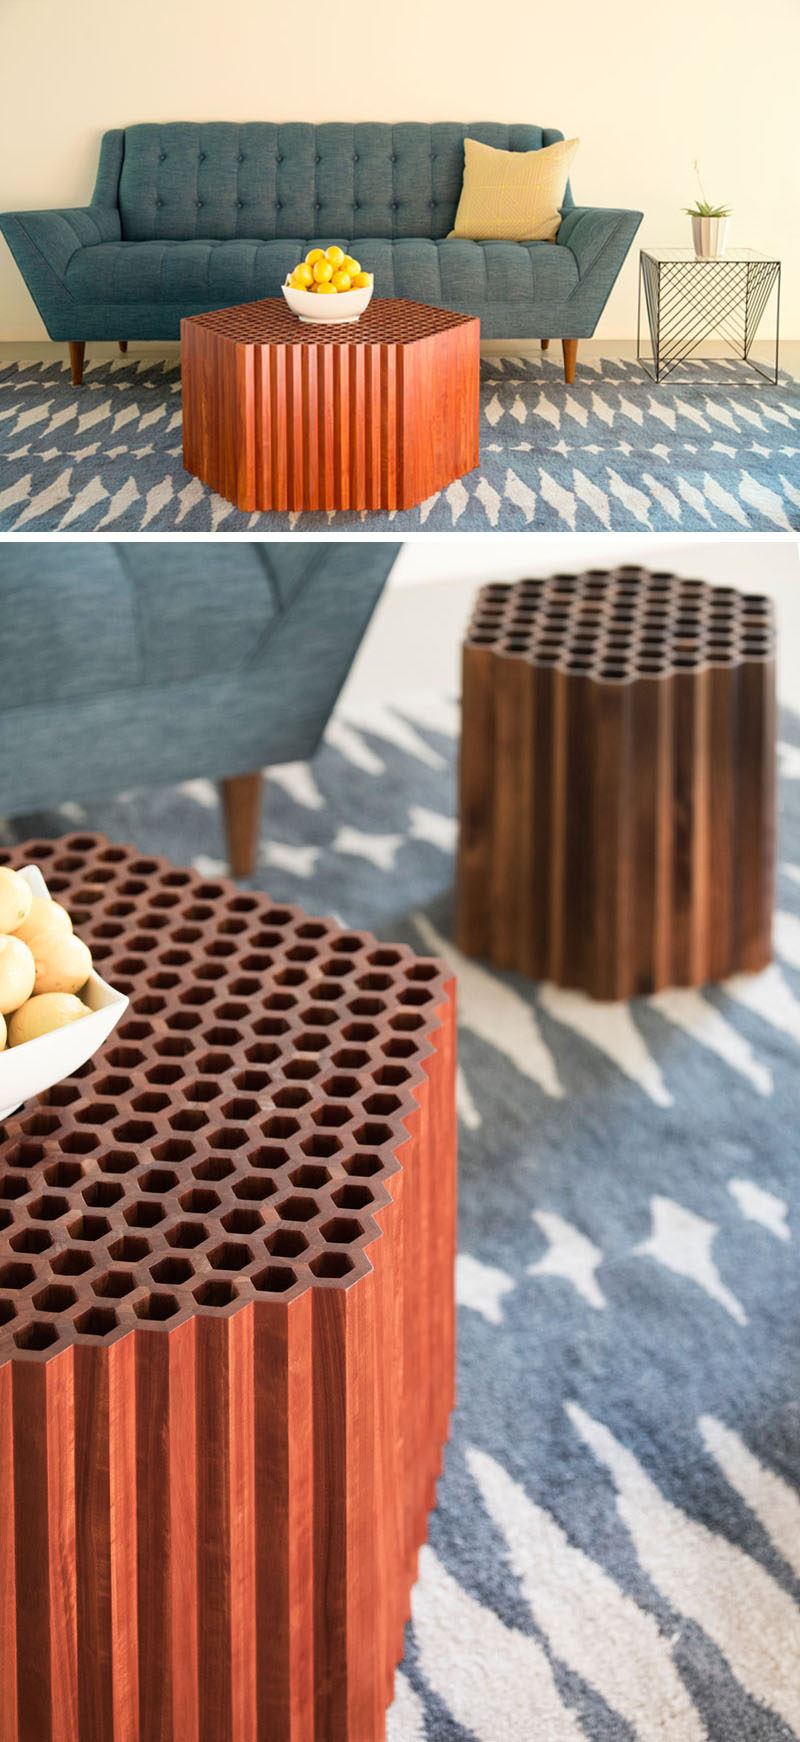 Furniture designer and maker Josh Neilsen, has created the Honeycomb Table, inspired by geometry in nature and made from hand-crafted hexagonal wood cells. #WoodCoffeeTable #SculpturalFurniture #Design